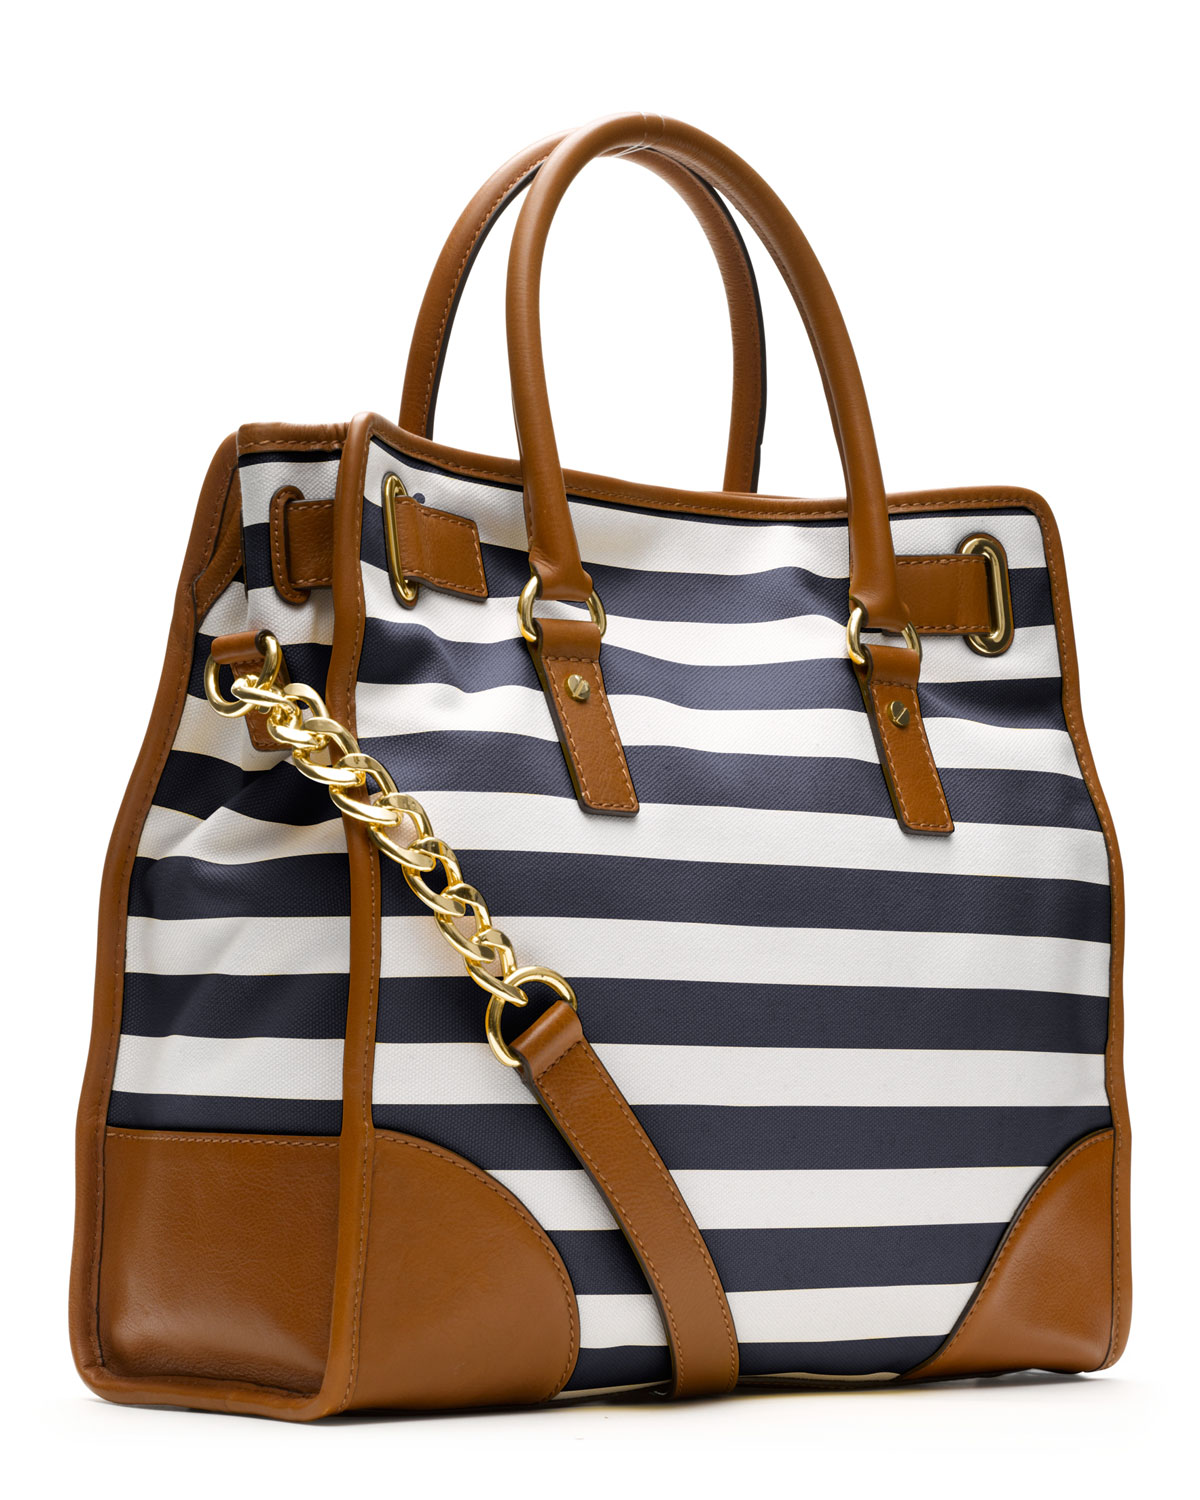 Lyst - Michael Kors Large Hamilton Striped Canvas Tote in Blue 9e15c60ee2